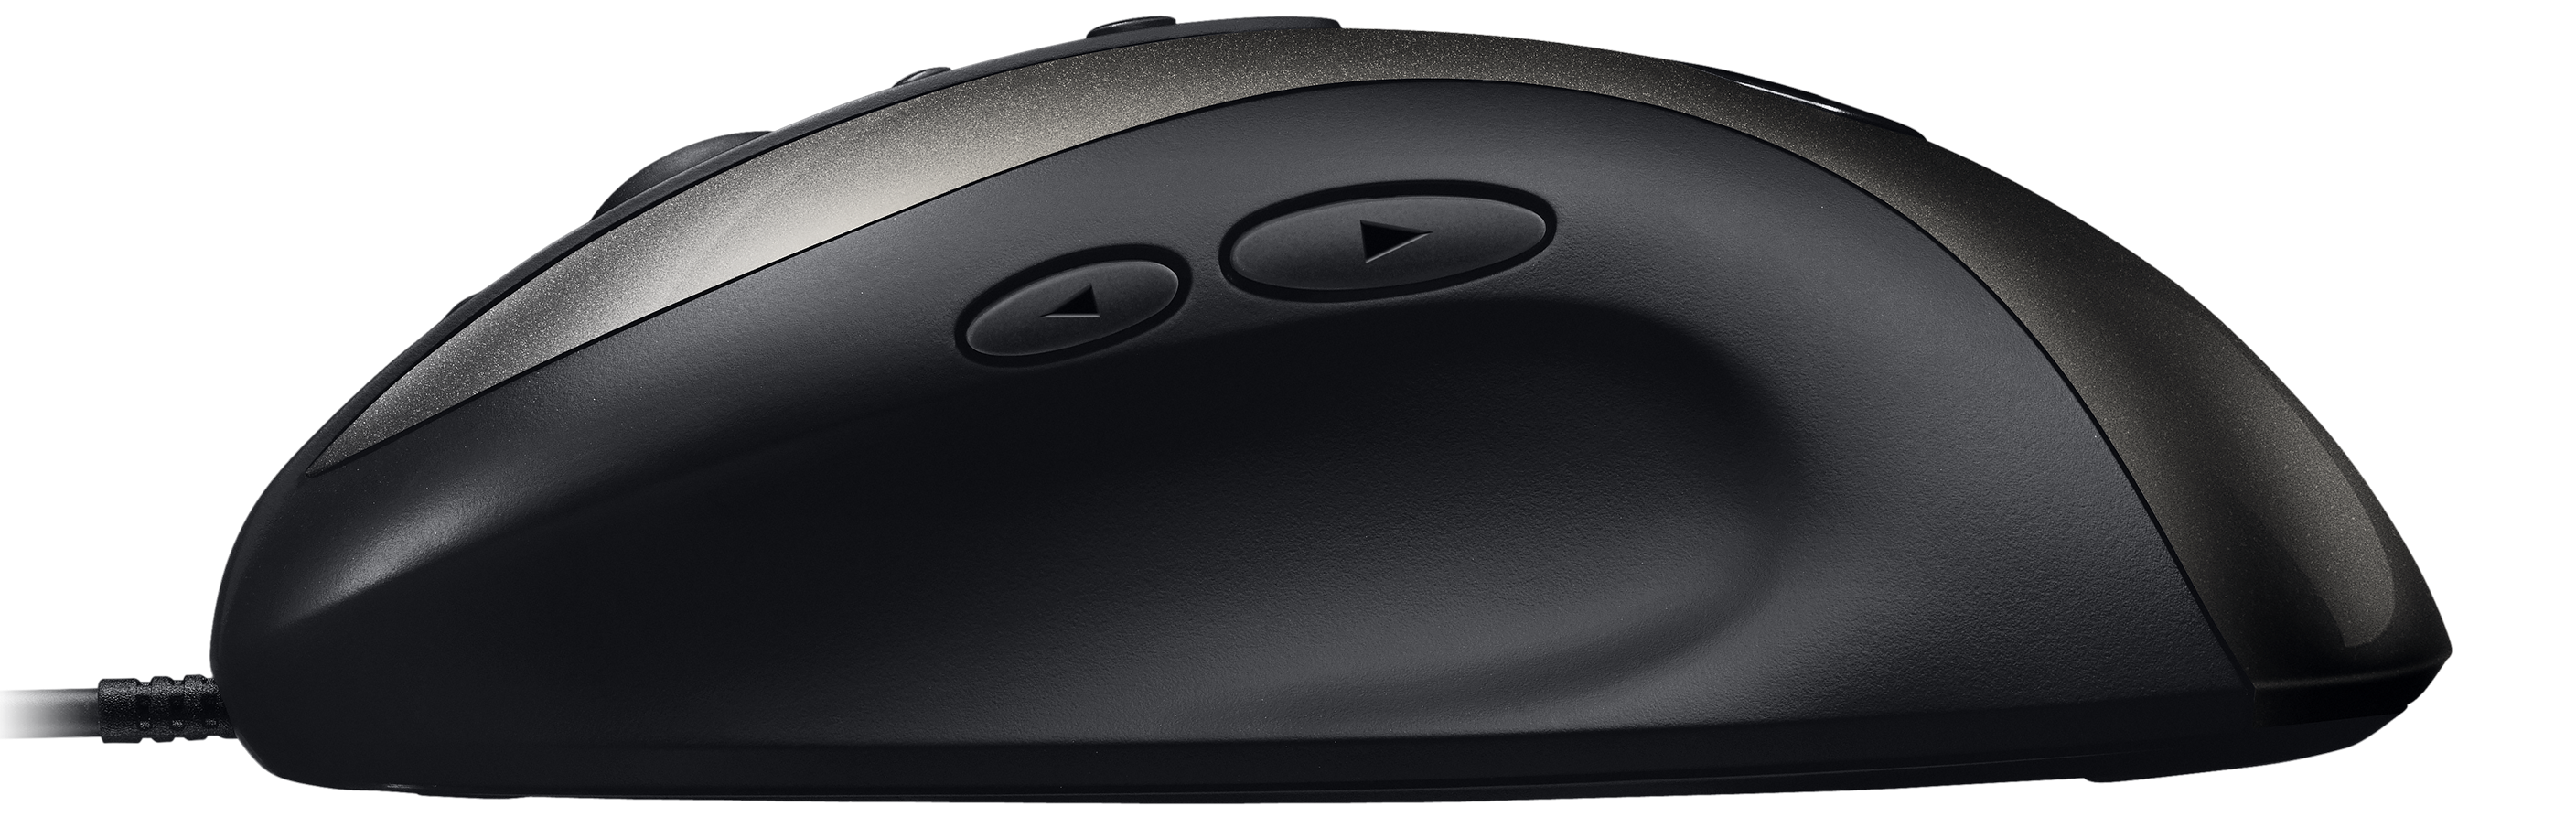 Image of Logitech MX518 legendary